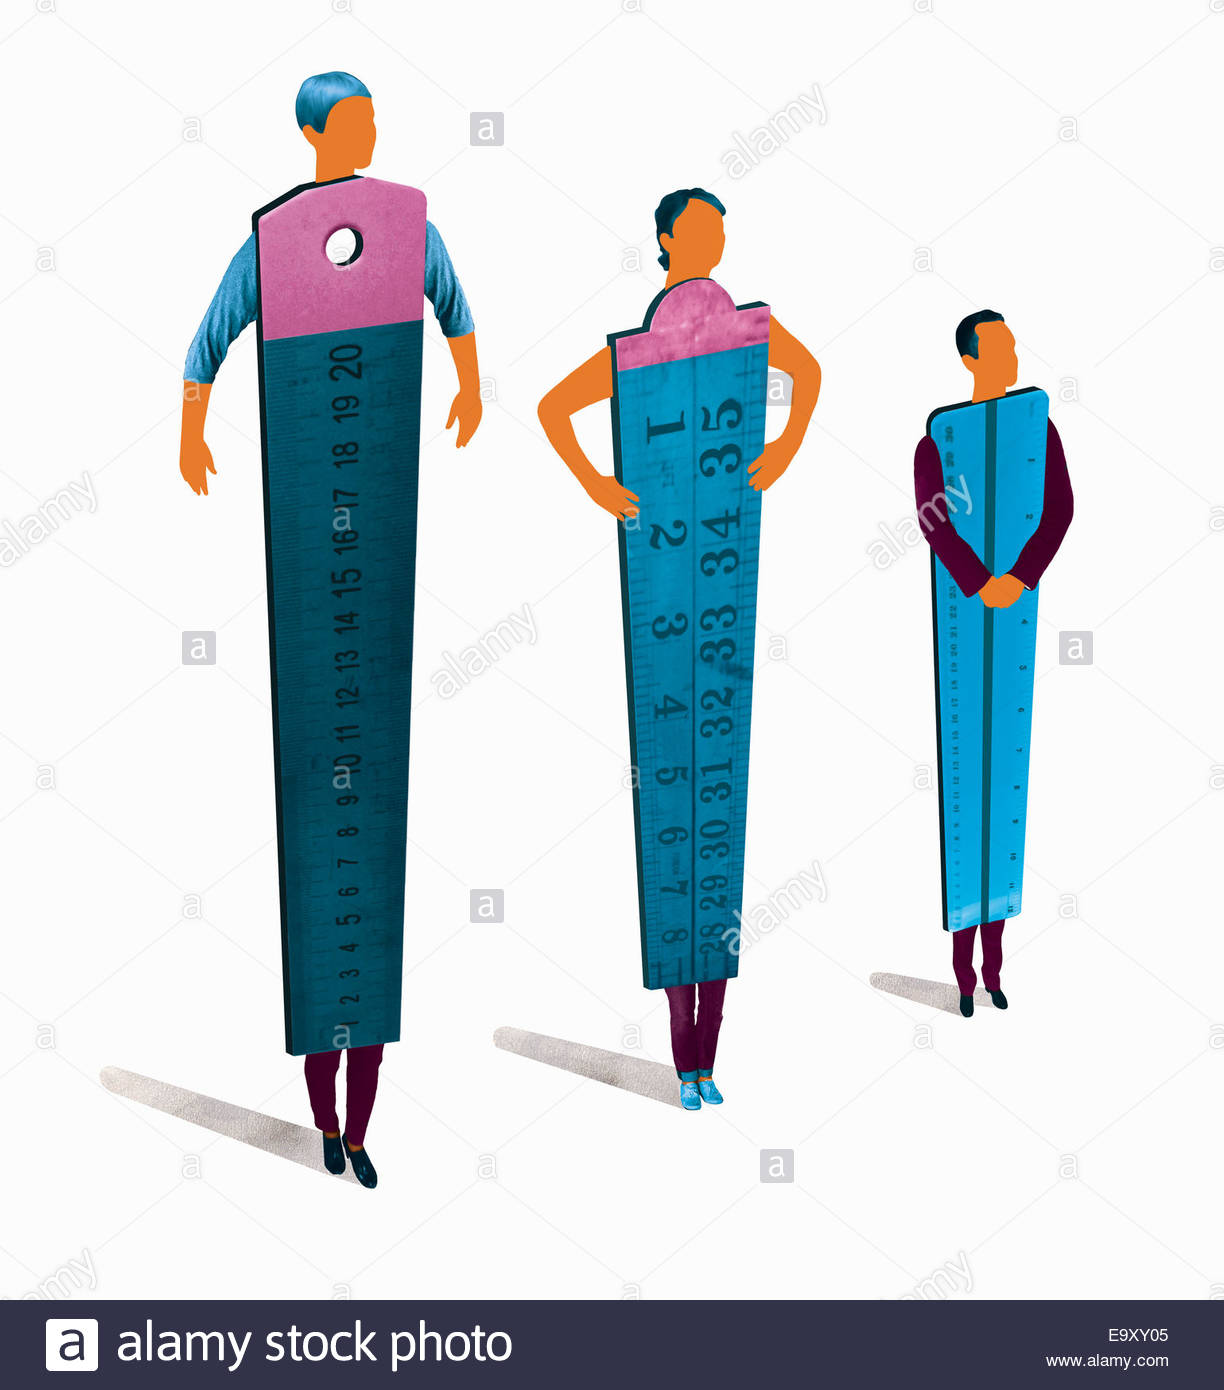 Business people rulers standing in hierarchy order - Stock Image